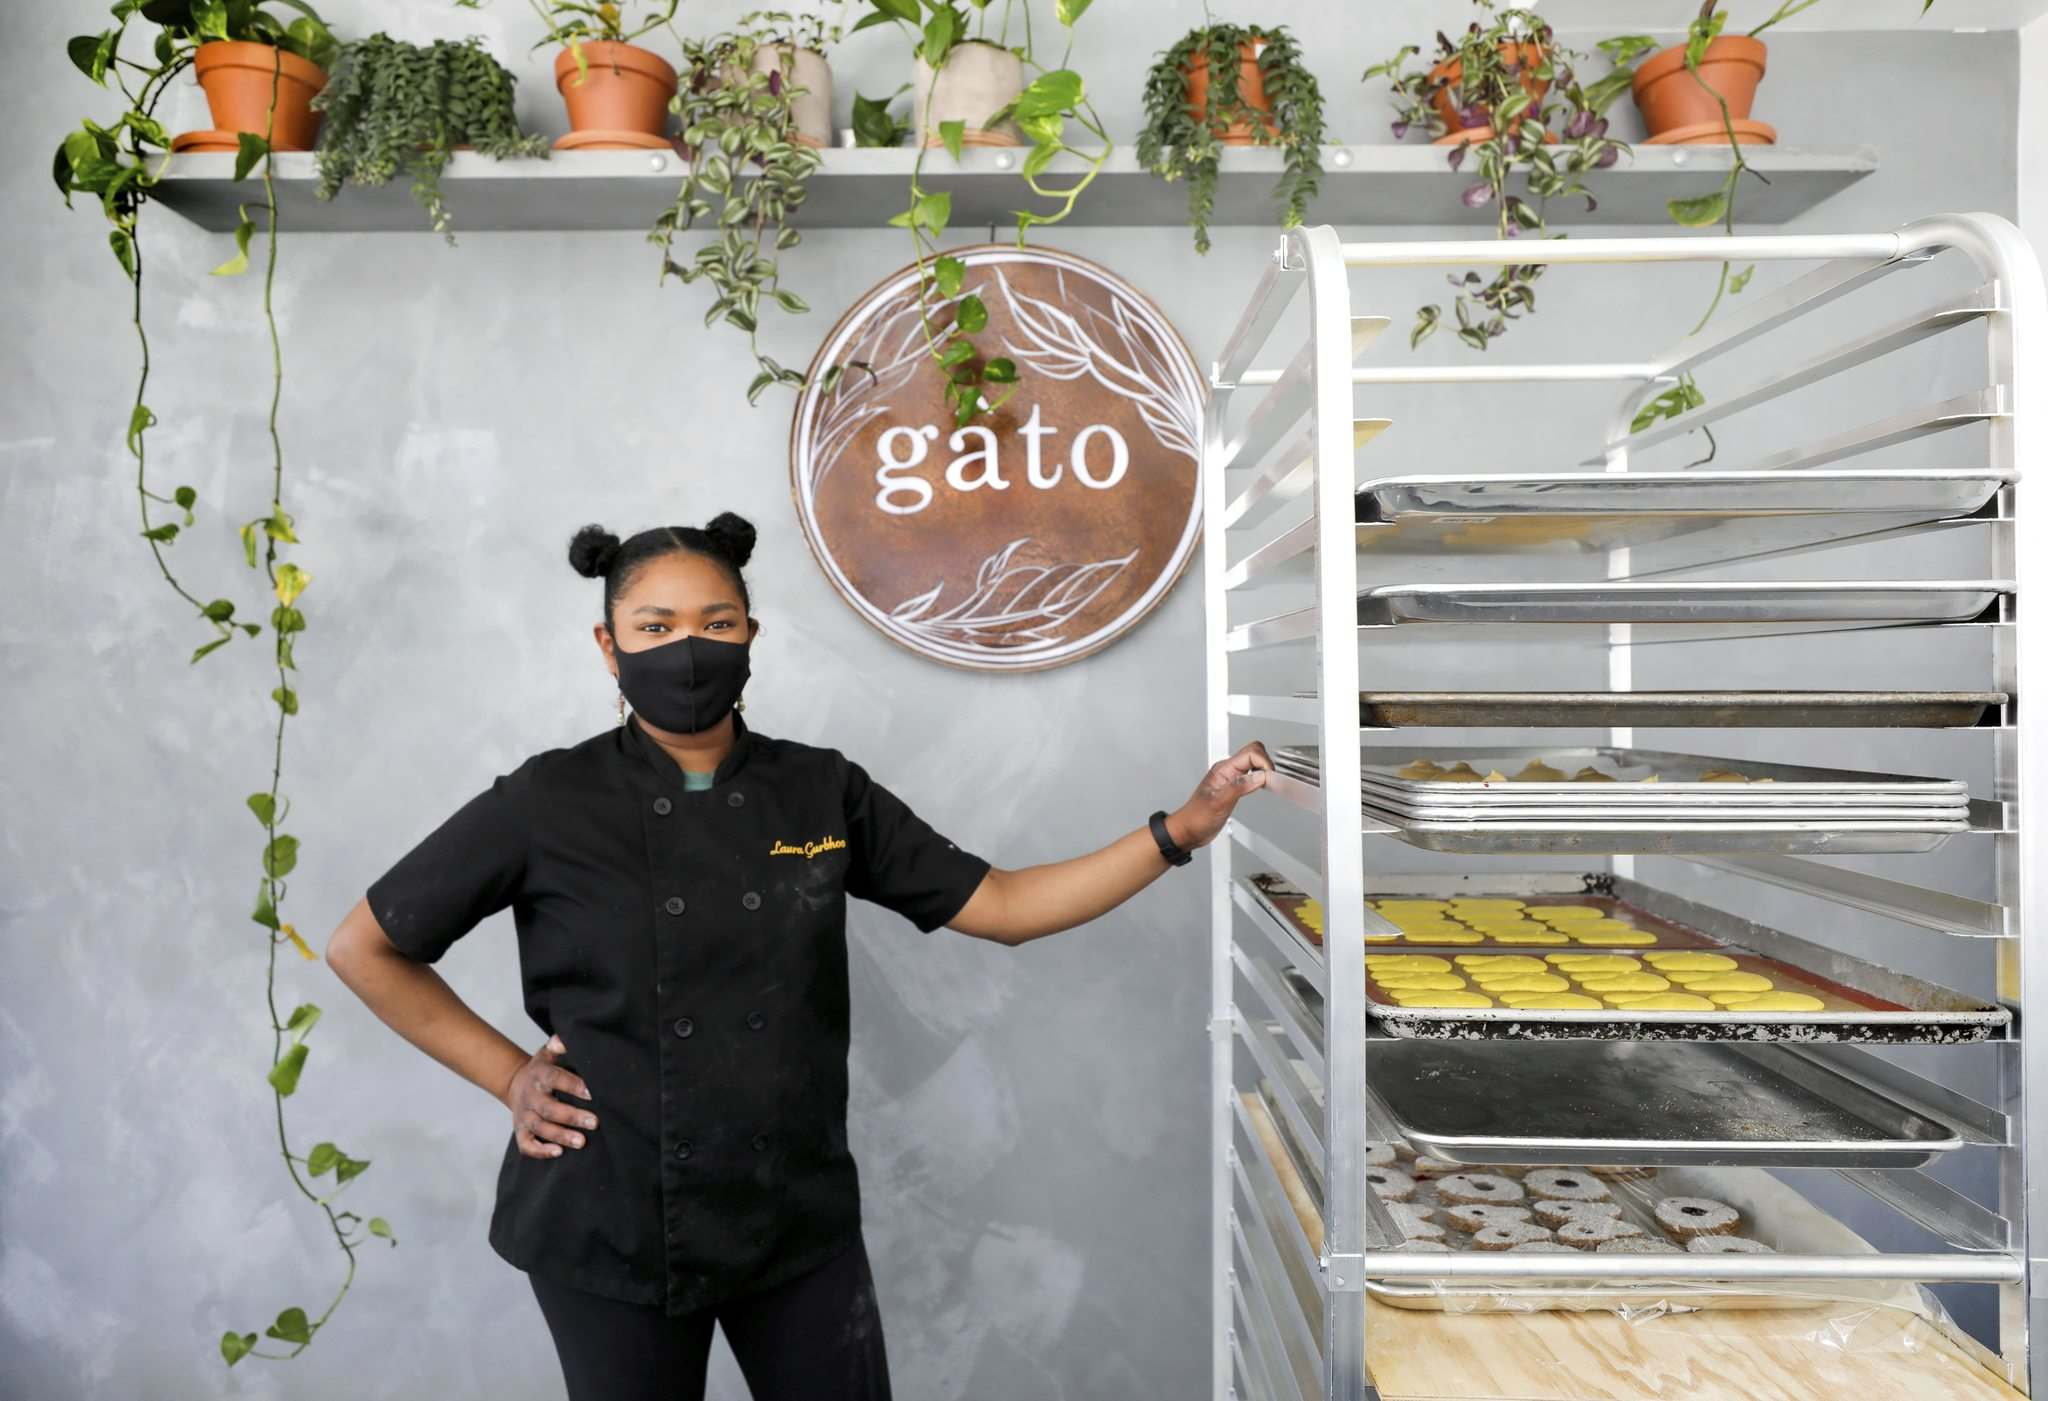 RUTH BONNEVILLE / WINNIPEG FREE PRESS</p><p>The short menu of vegan baked goods at Gâto reflects baker Laura Gurbhoo's dedication to using only sustainable ingredients and practices.</p></p>